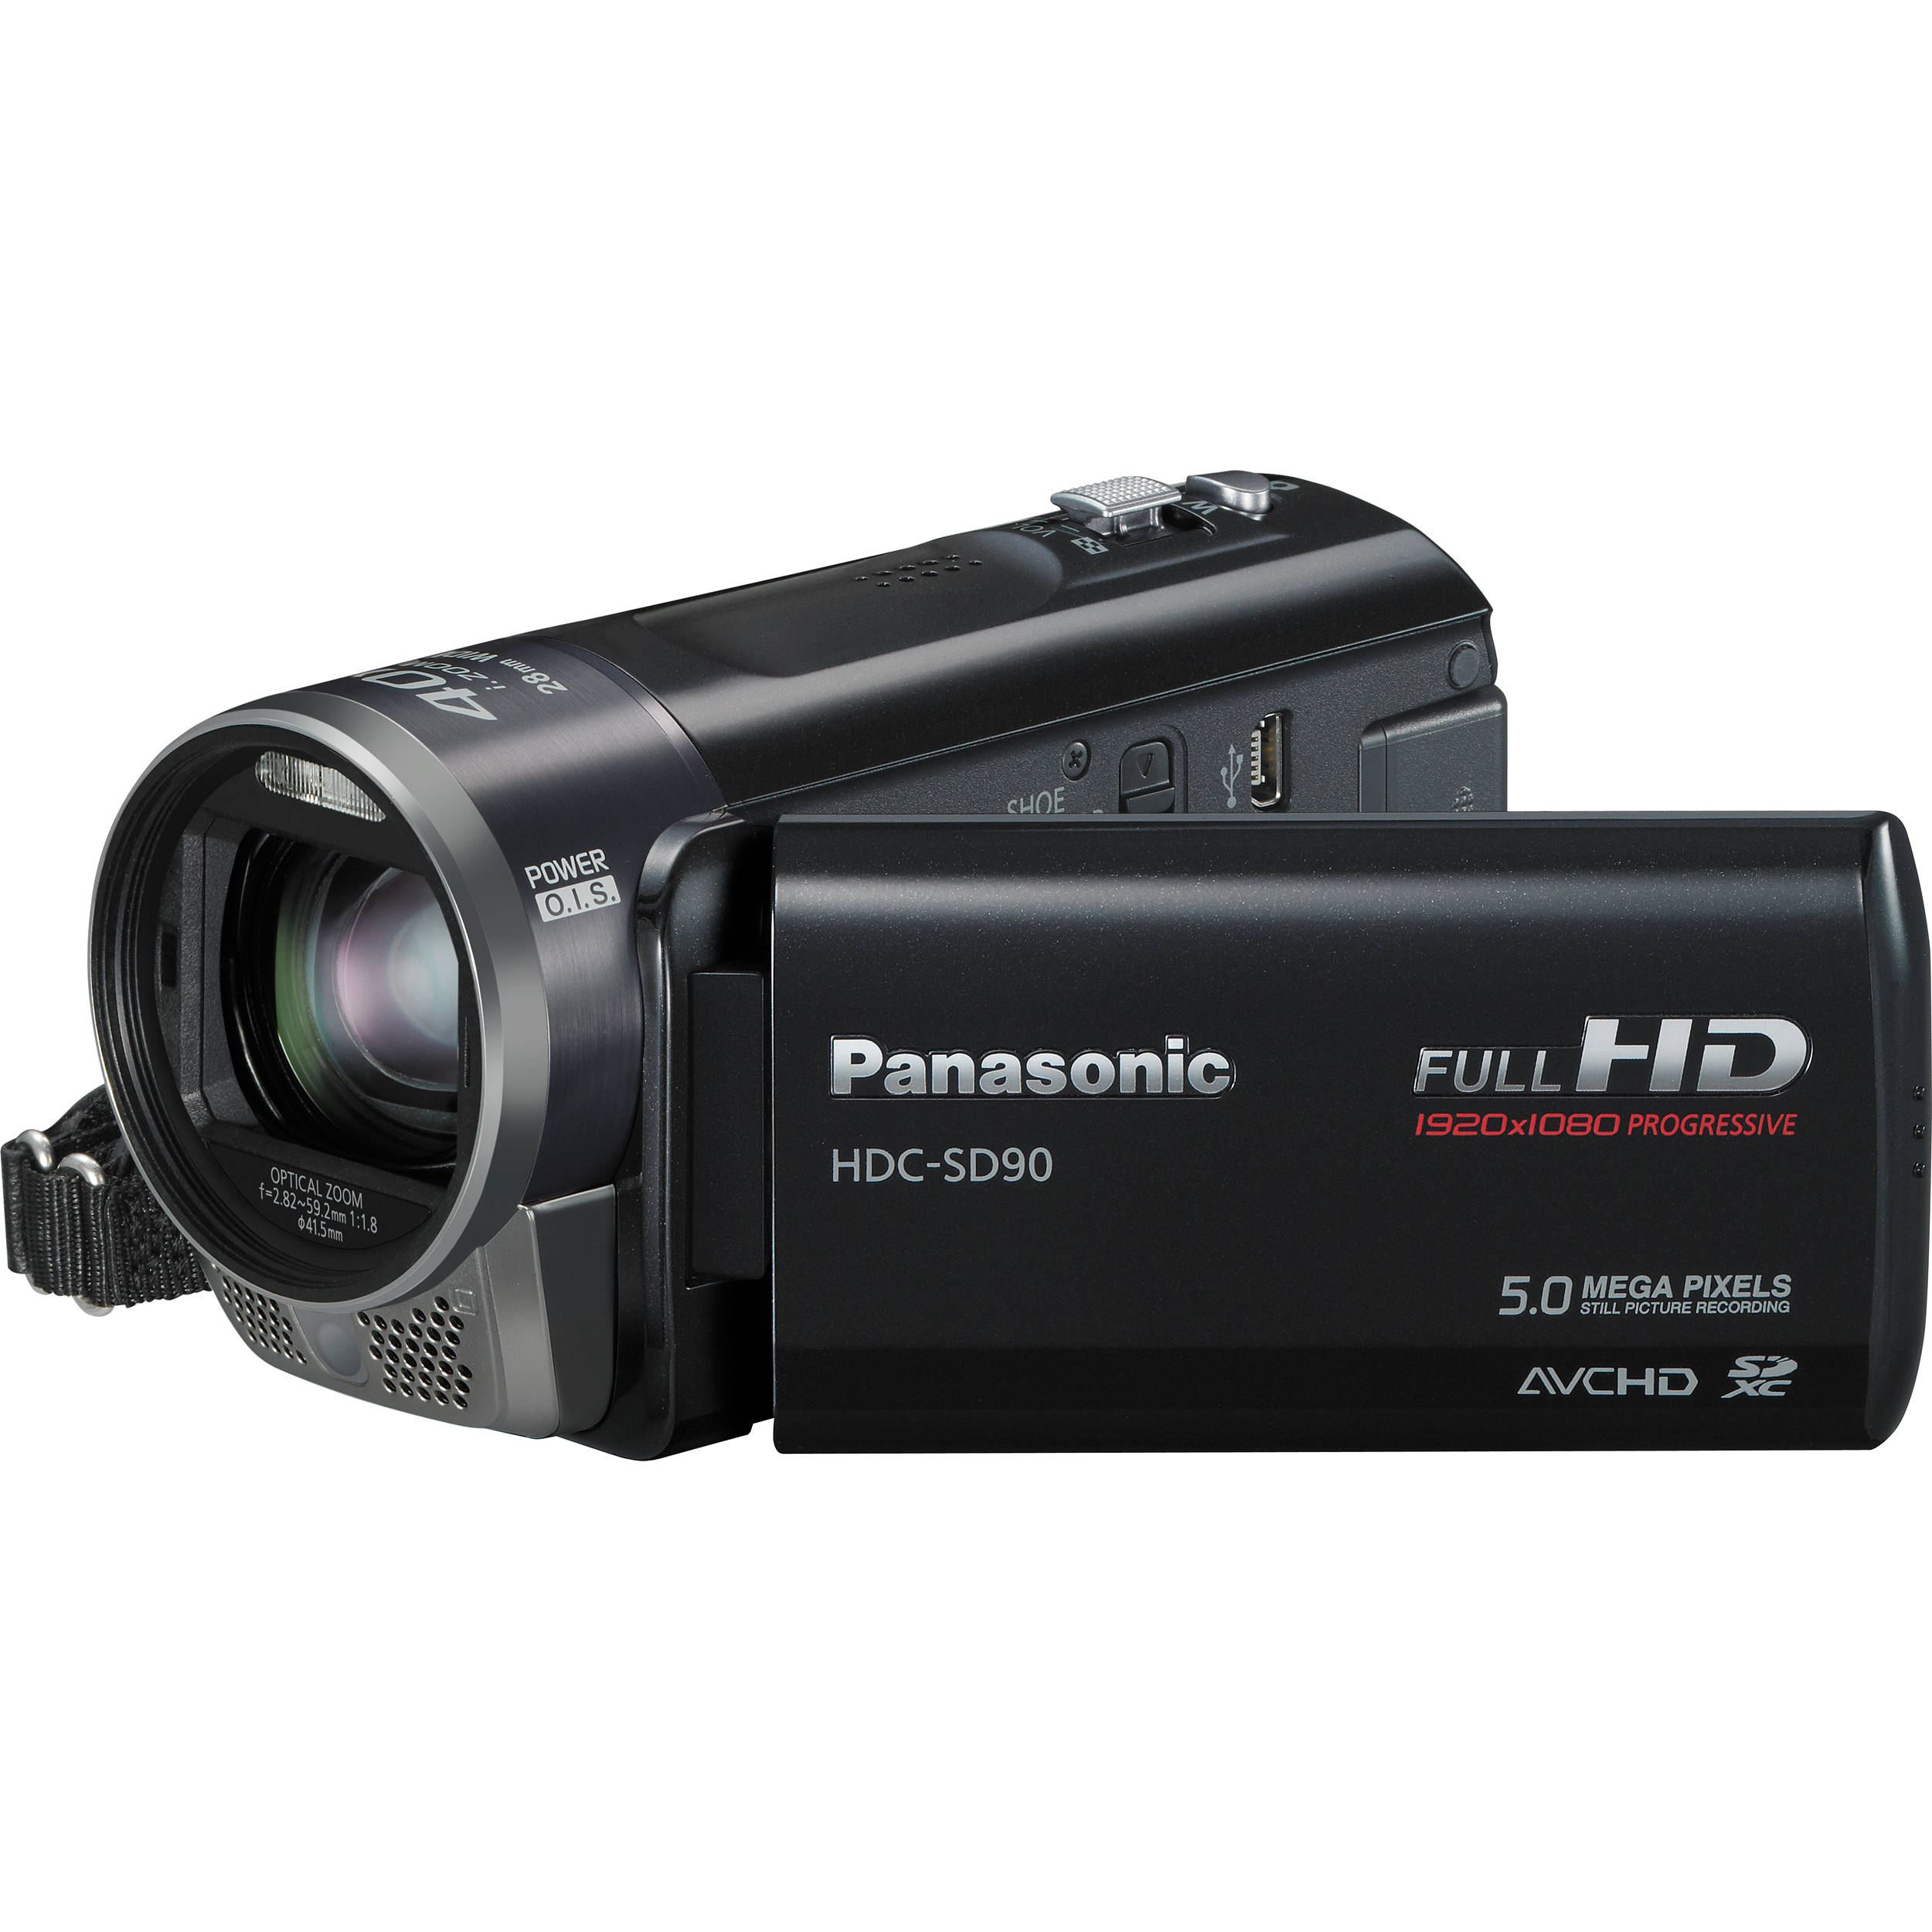 Panasonic HDC-SD90 High Definition Camcorder